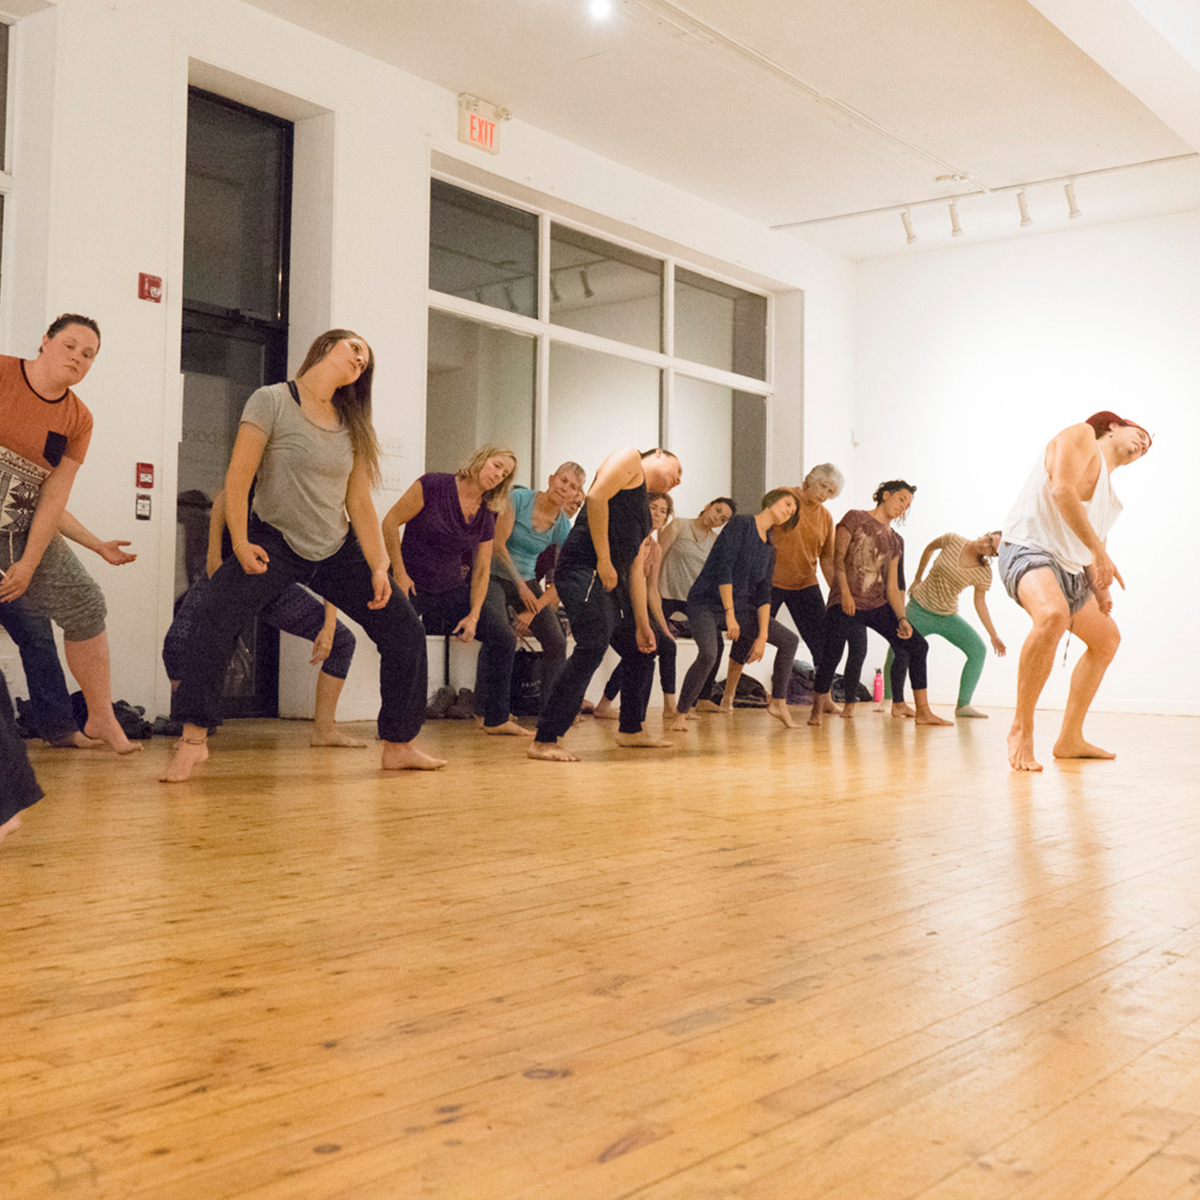 Alternating Currents. A group of people doing a movement exerciser together in the photo.